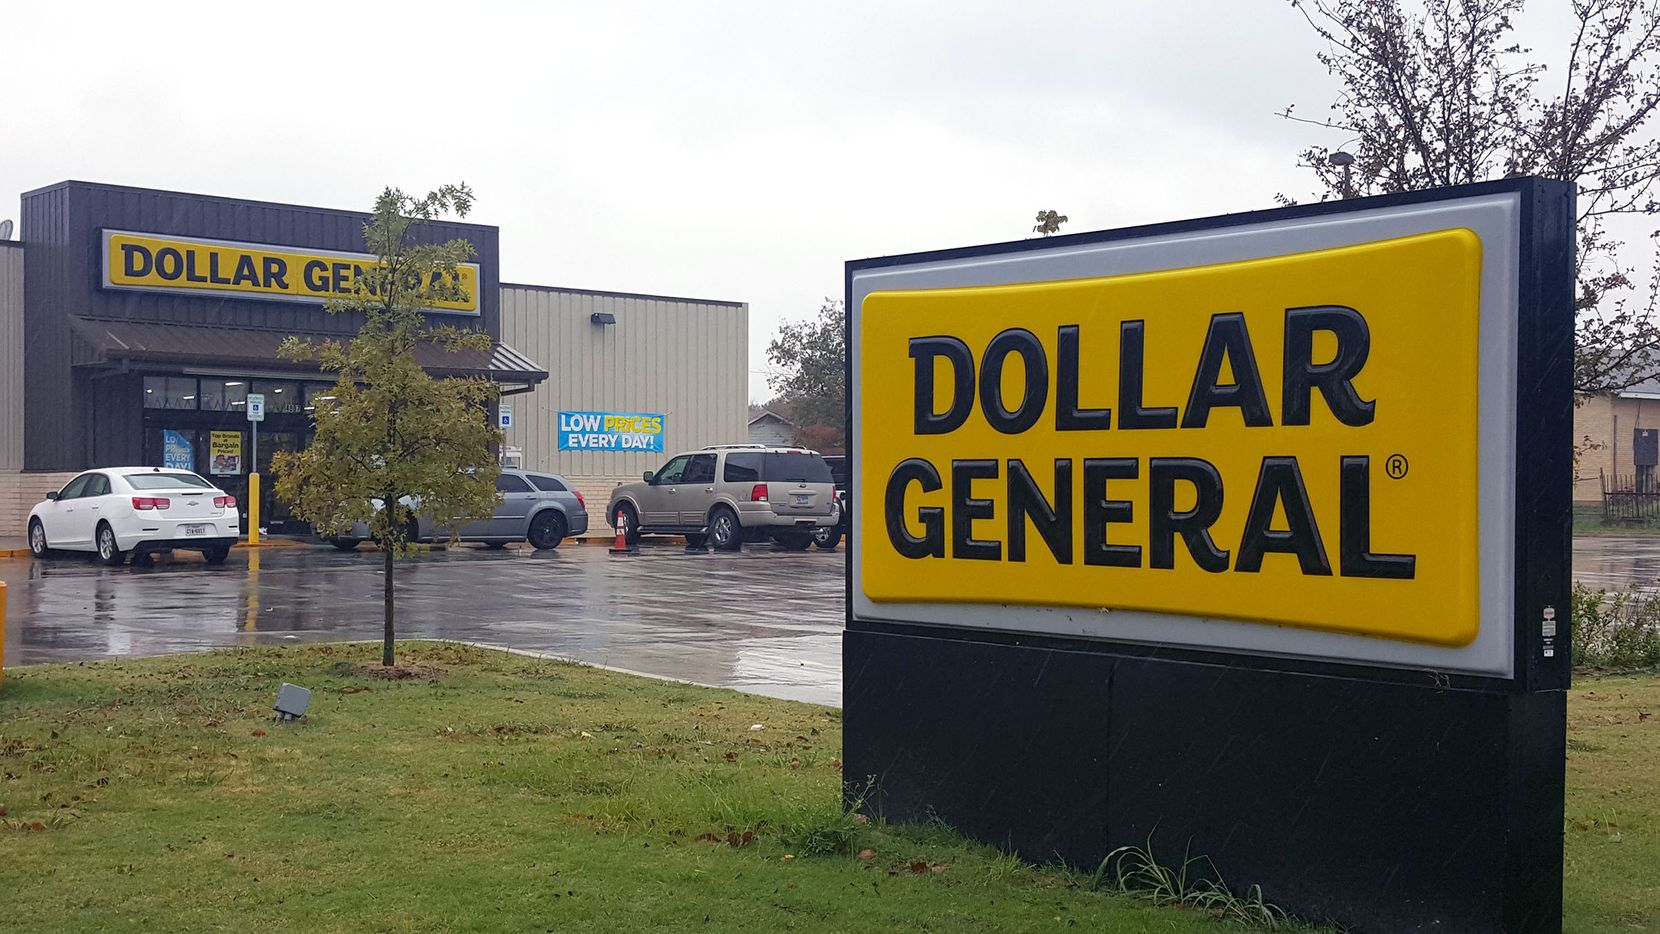 The Dollar General store at 4807 Sunnyvale in Dallas was robbed and clerk Gabrielle Simmons was shot and killed Monday, Nov. 6, 2017.